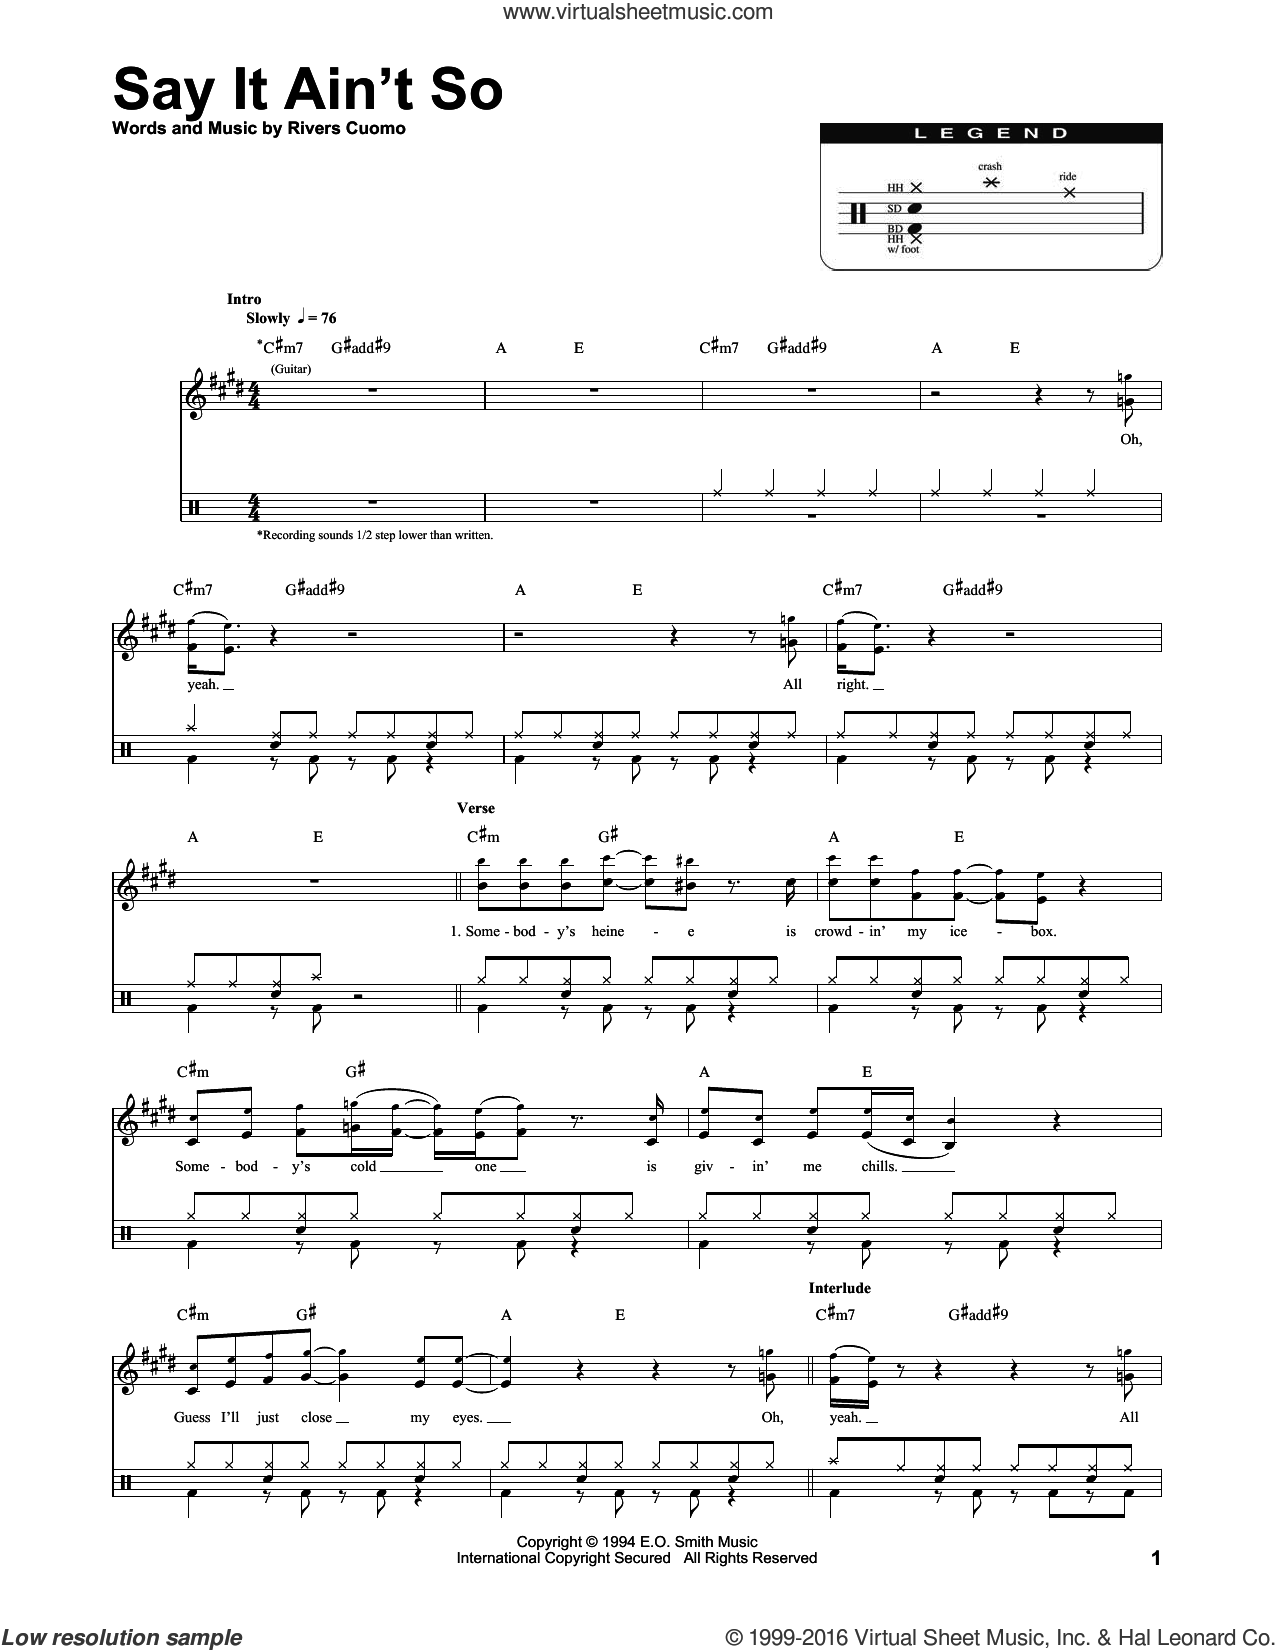 Say It Ain't So sheet music for drums by Rivers Cuomo